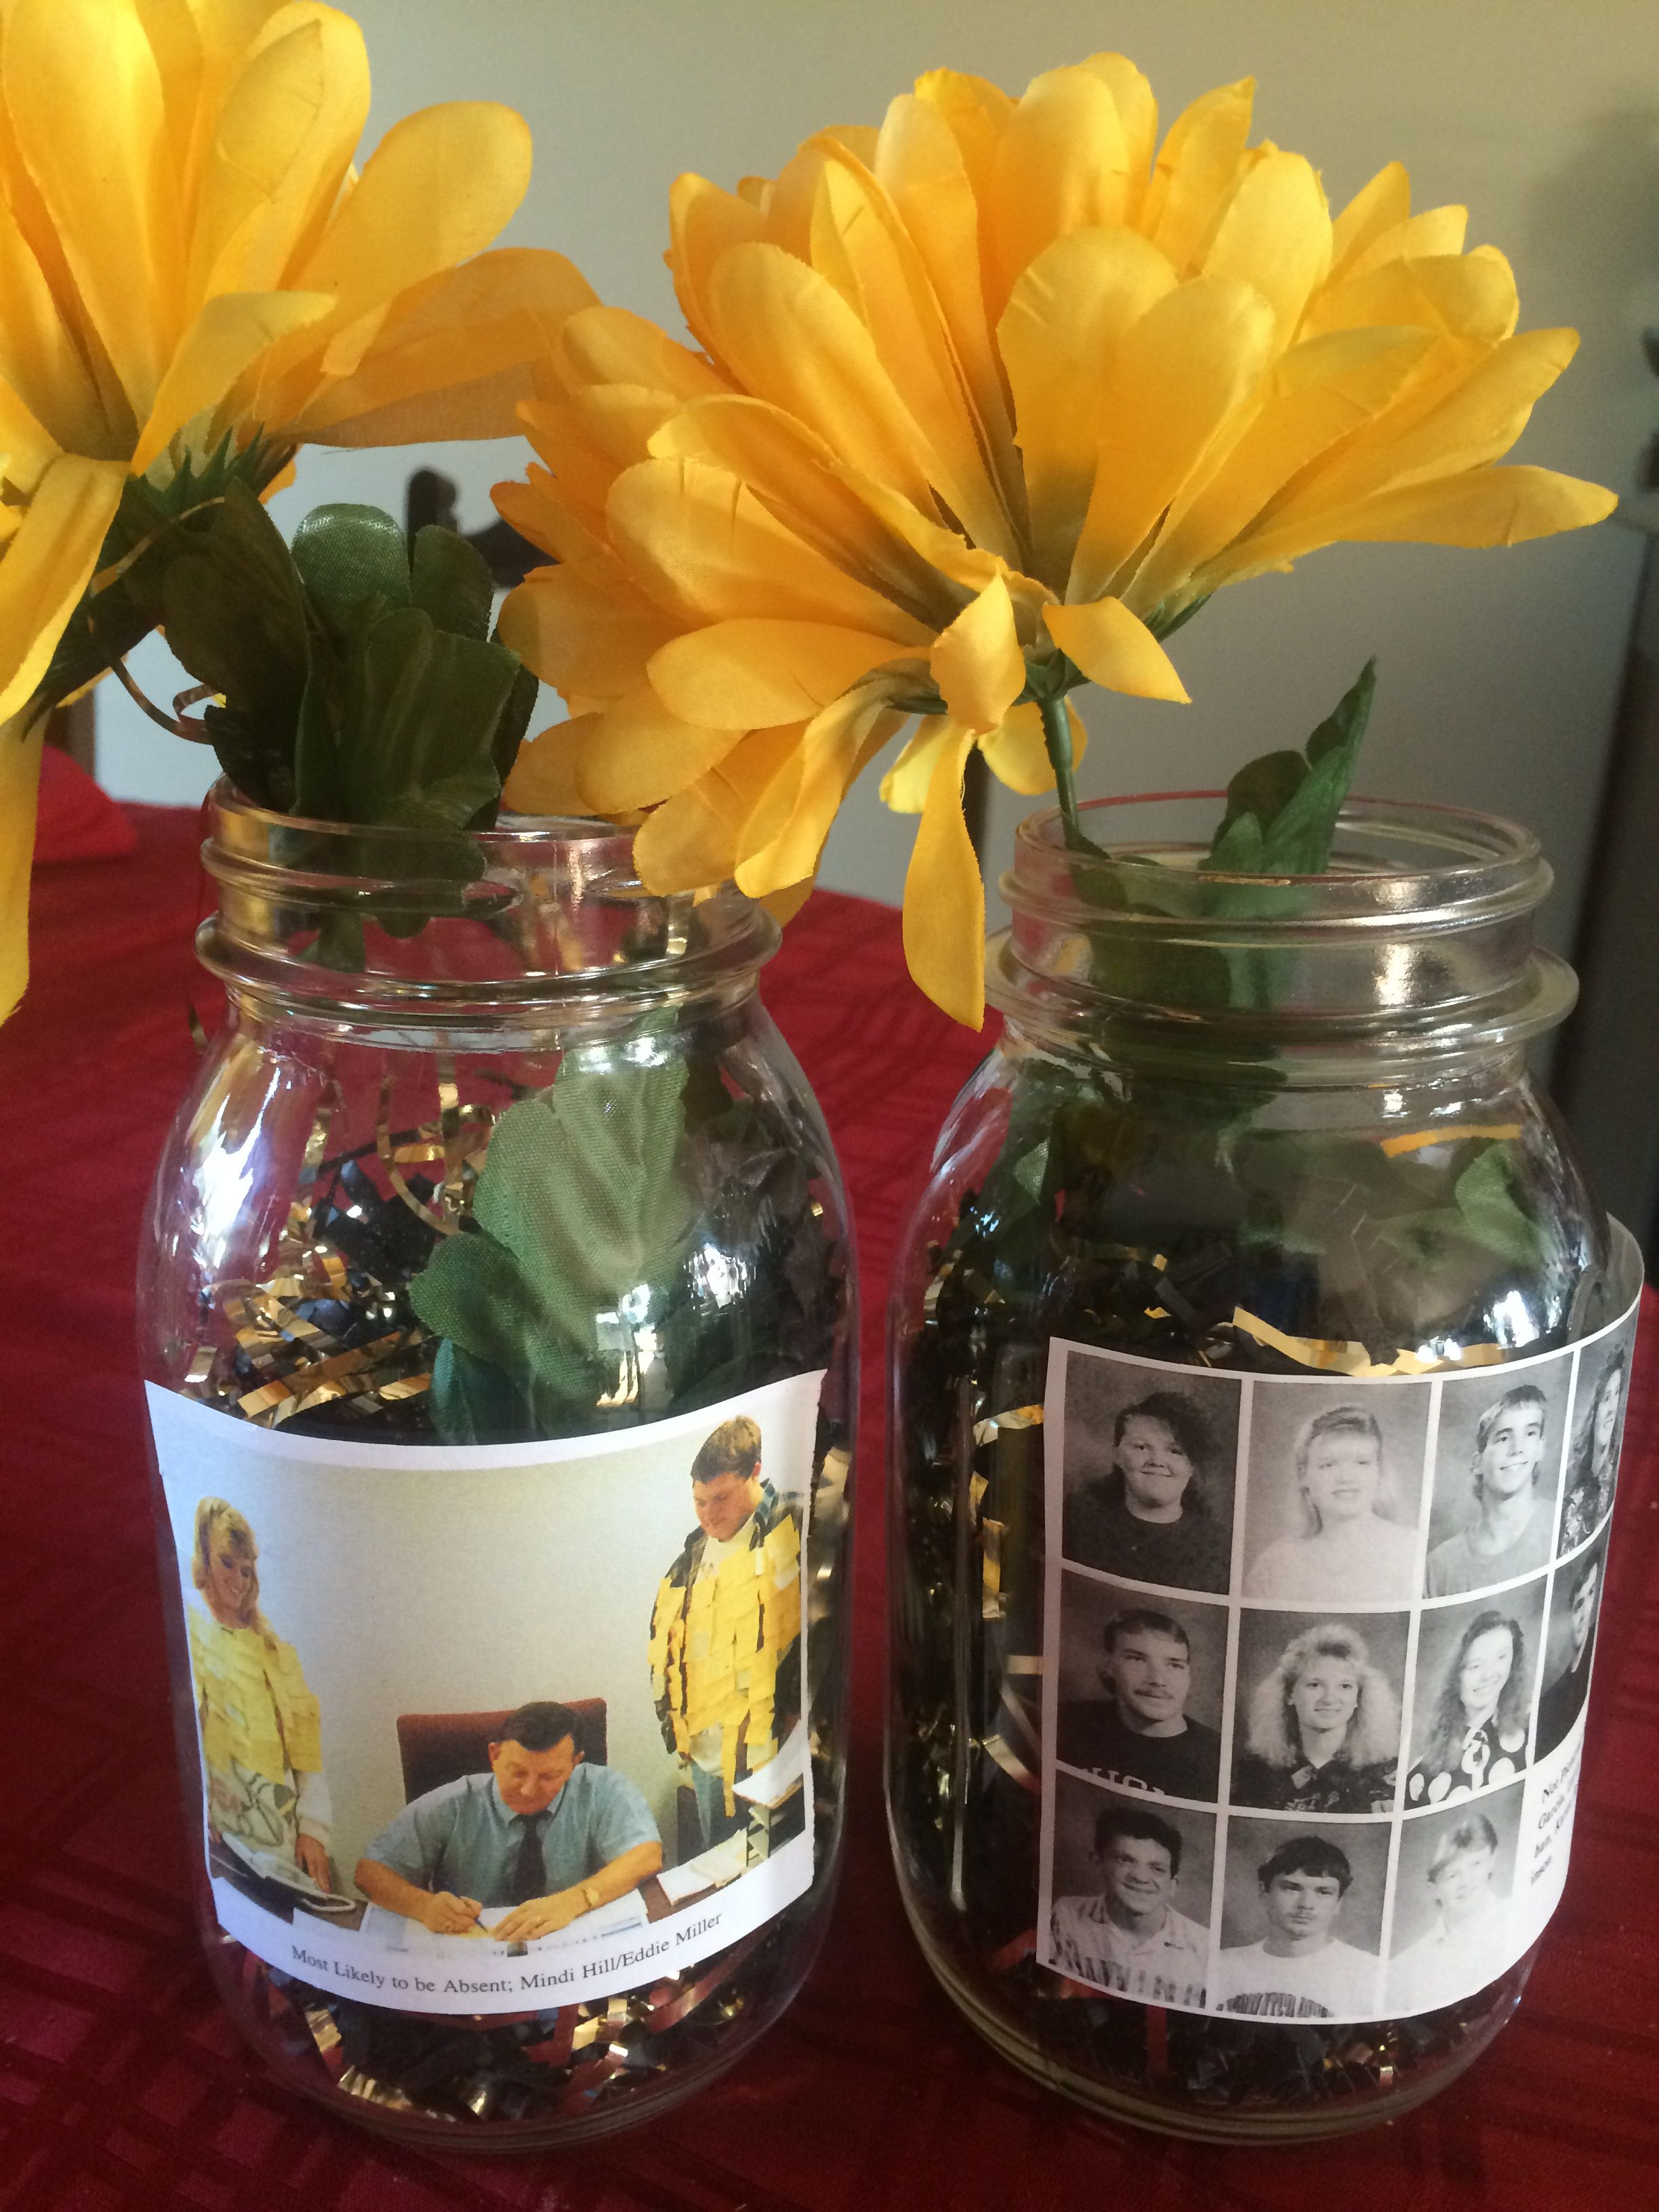 Pin By Lola Rusin On Reunion Decorations In 2020 Reunion Centerpieces Reunion Decorations Class Reunion